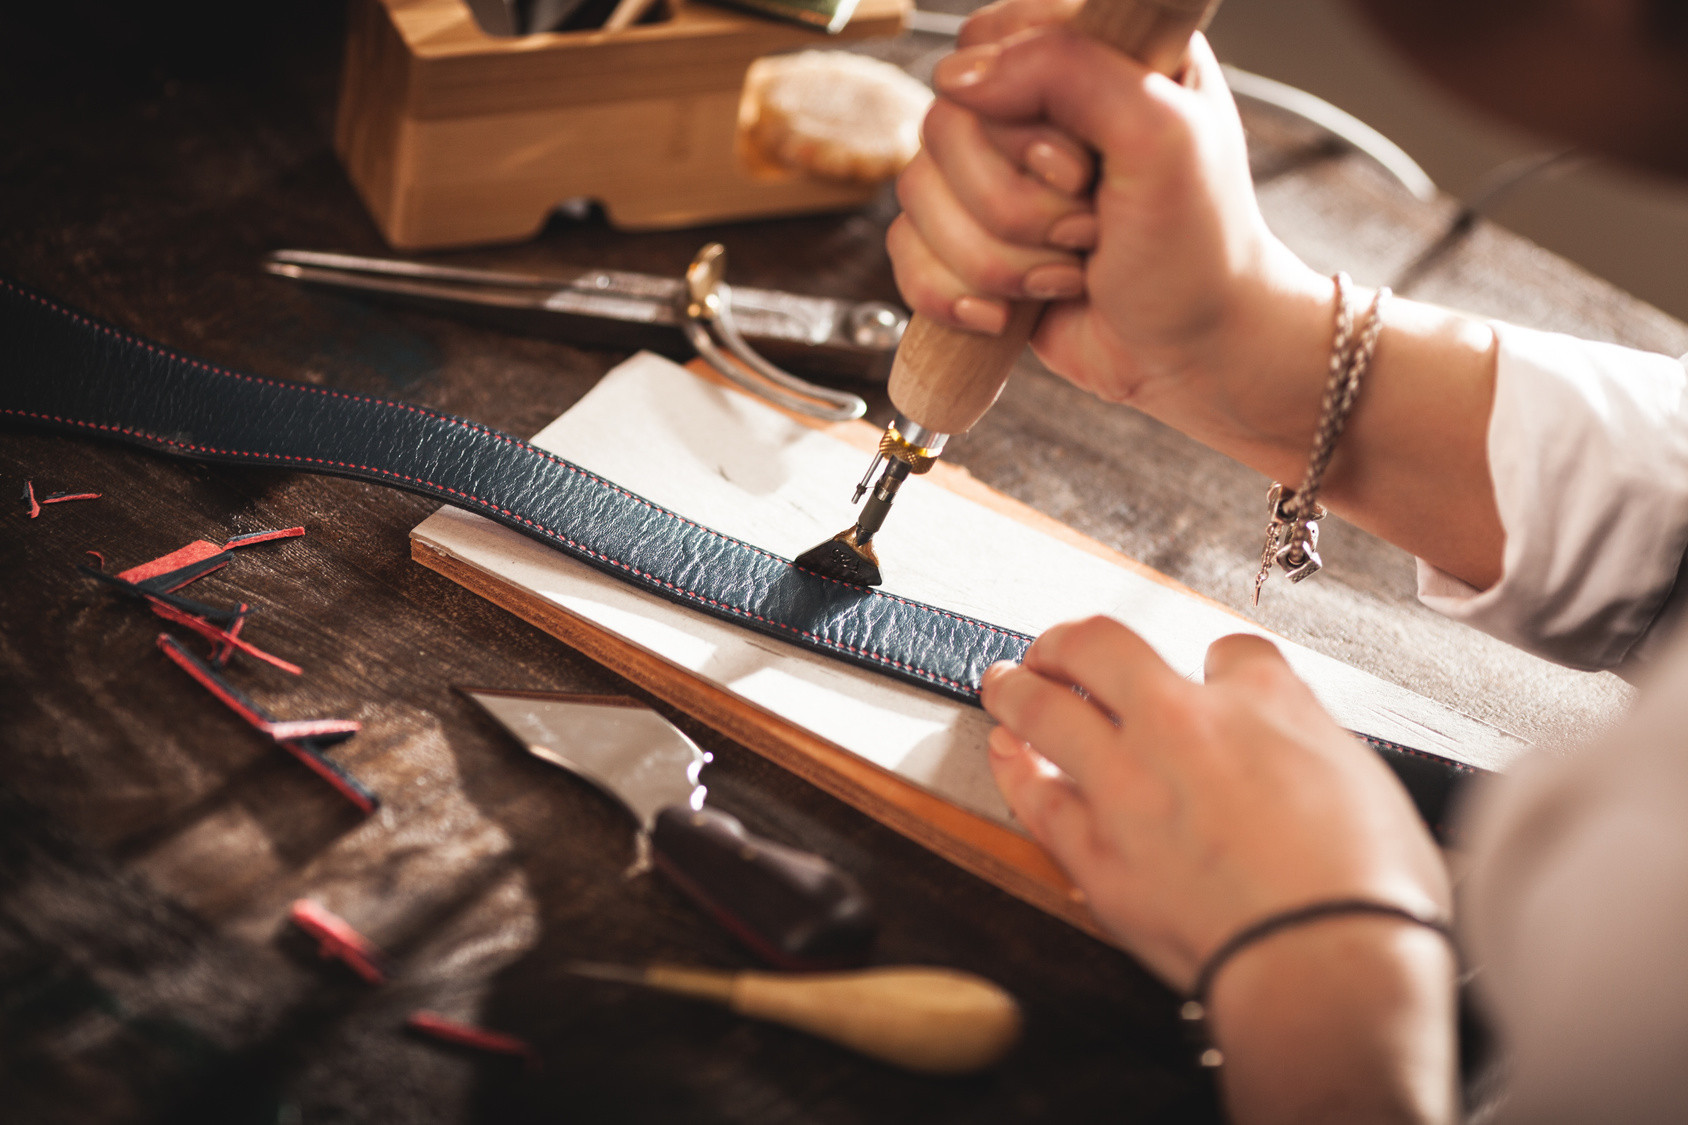 The 10 Best Online Marketplaces for Handmade Goods